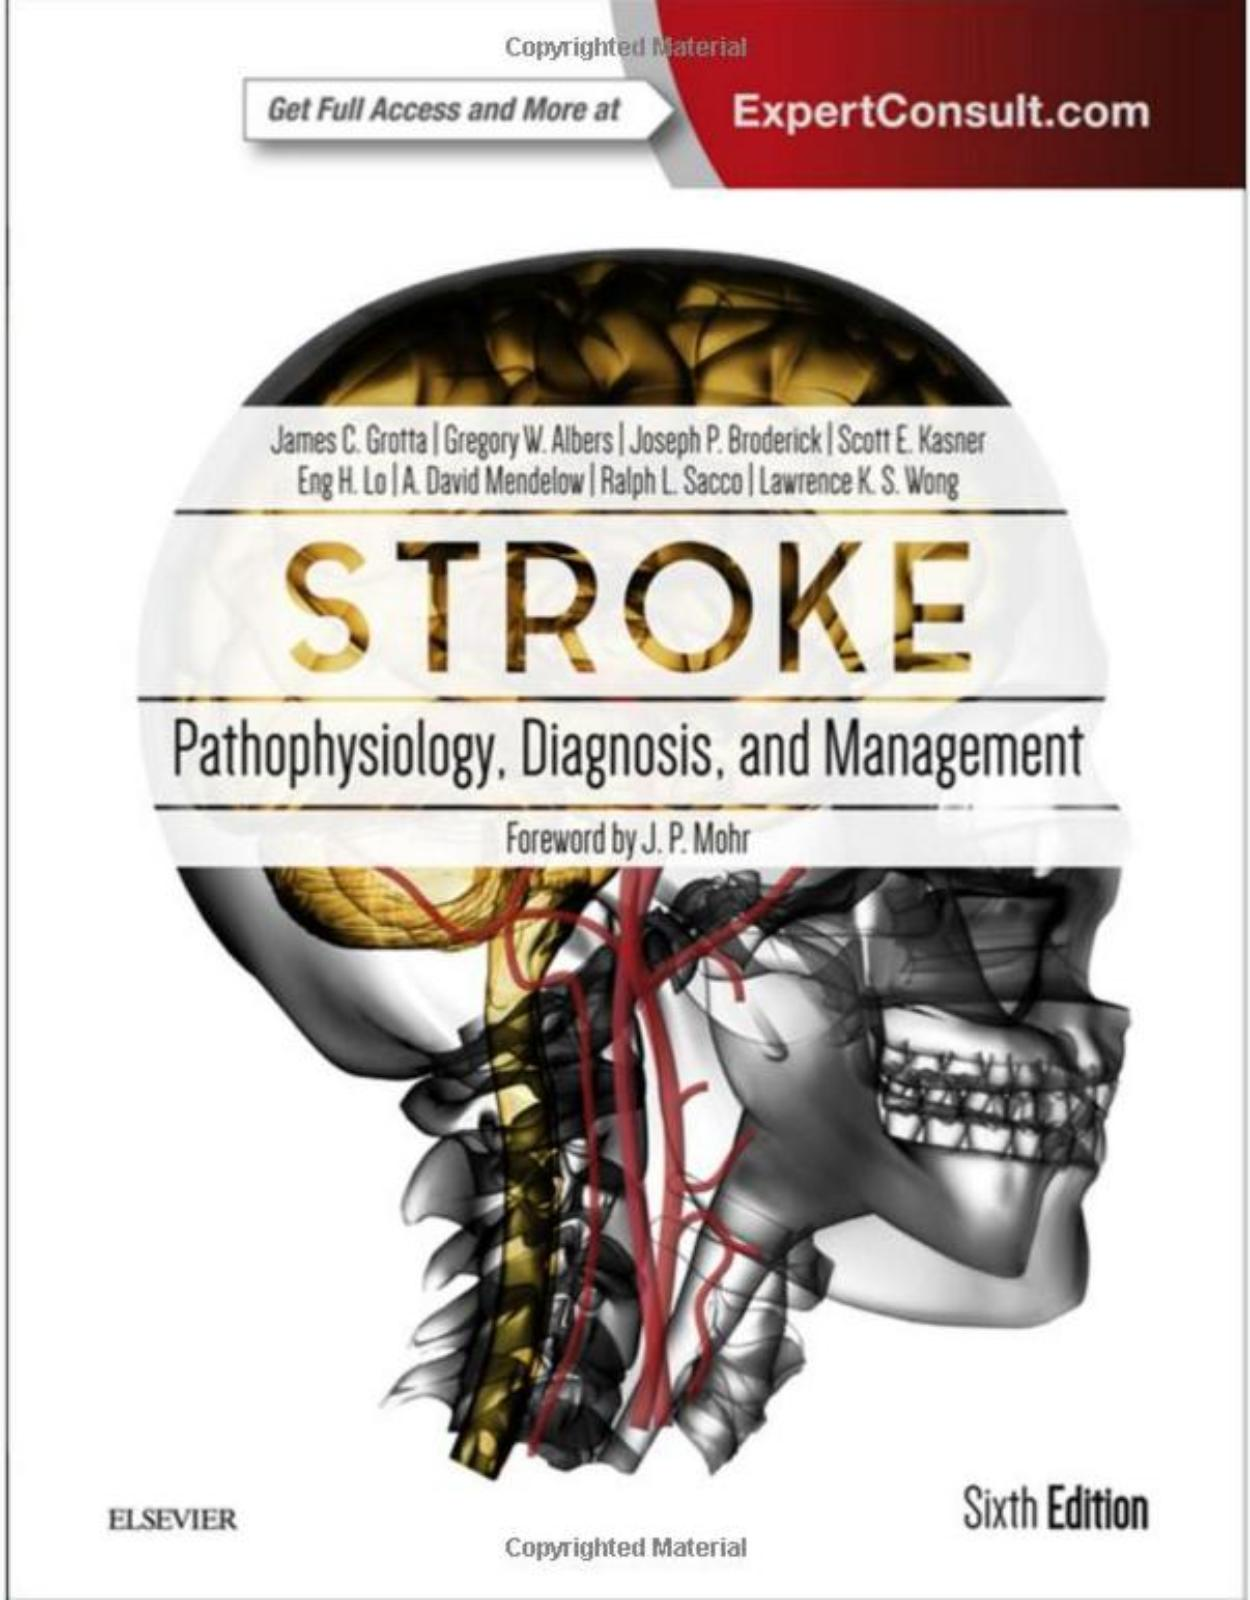 Stroke, 6th Edition  Pathophysiology, Diagnosis, and Management